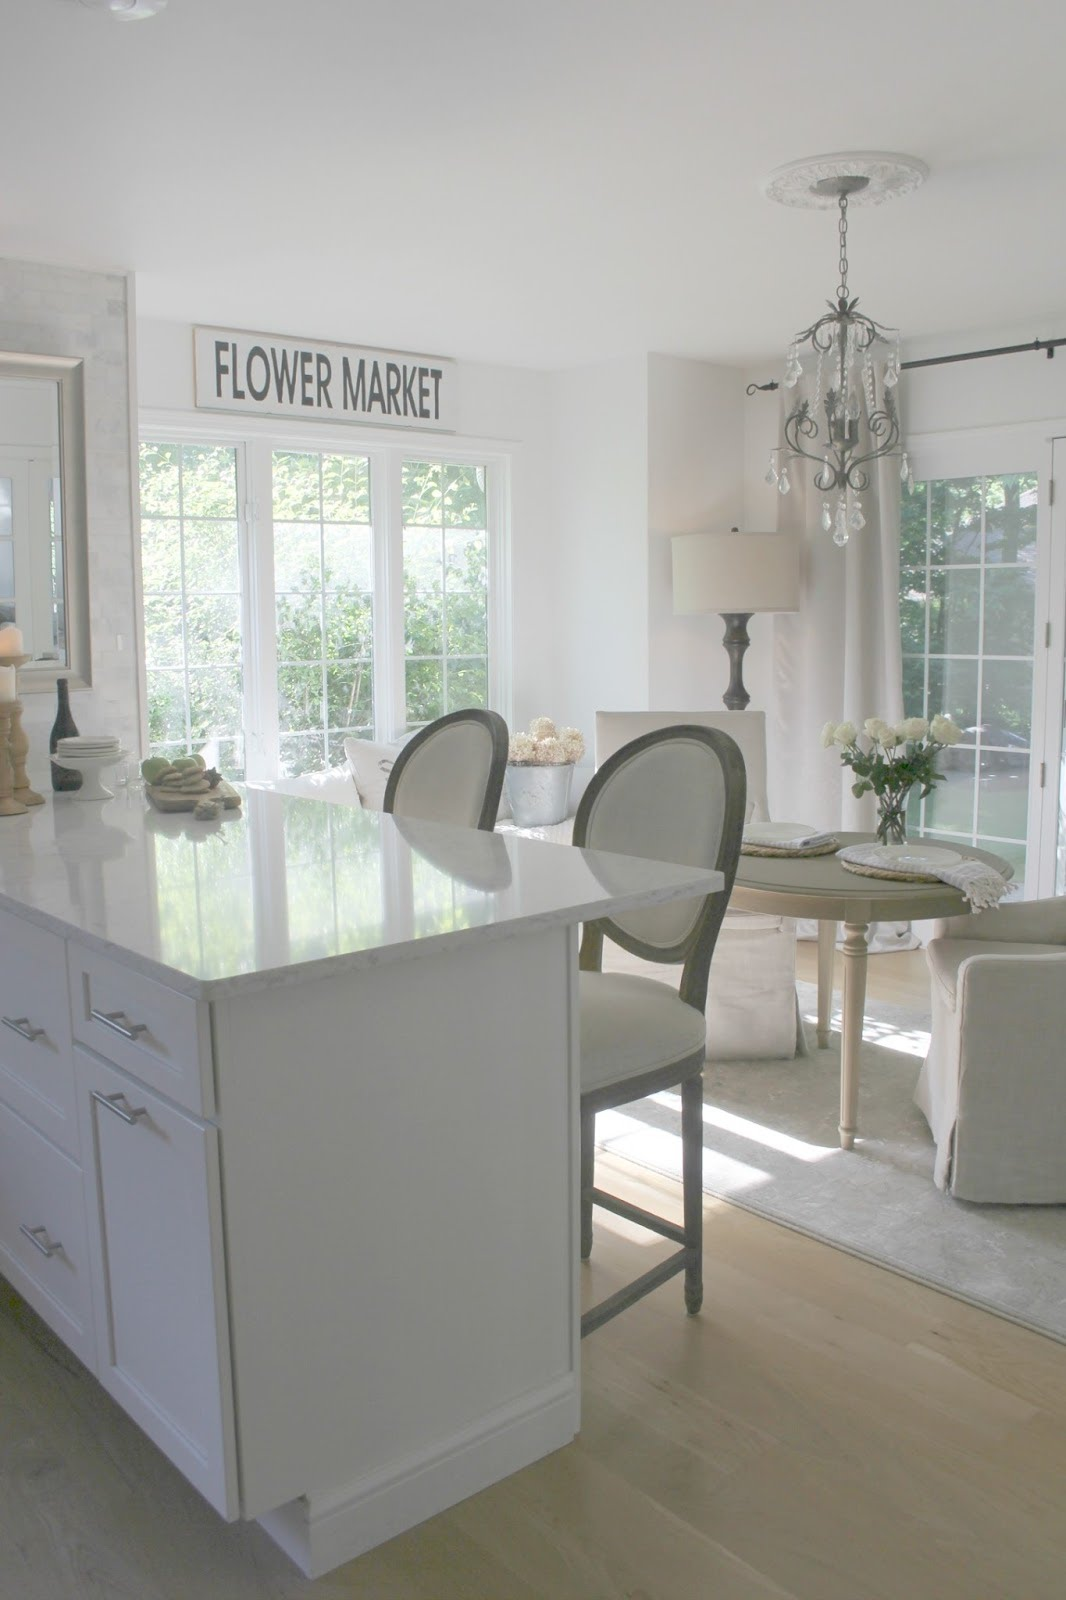 My serene whit ekitchen with modern farmhouse, classic, and French country style. Vintage Flower Market sign from Urban Farmgirl. Viatera quartz (Minuet) countertops and Louis linen upholstered bar stools. Round breakfast table and two linen slipcovered arm chairs. Come explore Charming European Country Interior Design Inspiration: June Favorites, Part 2 Shares French Country Photos of Interiors to Inspire As Well As Decorating Finds and Tips Shared in June.